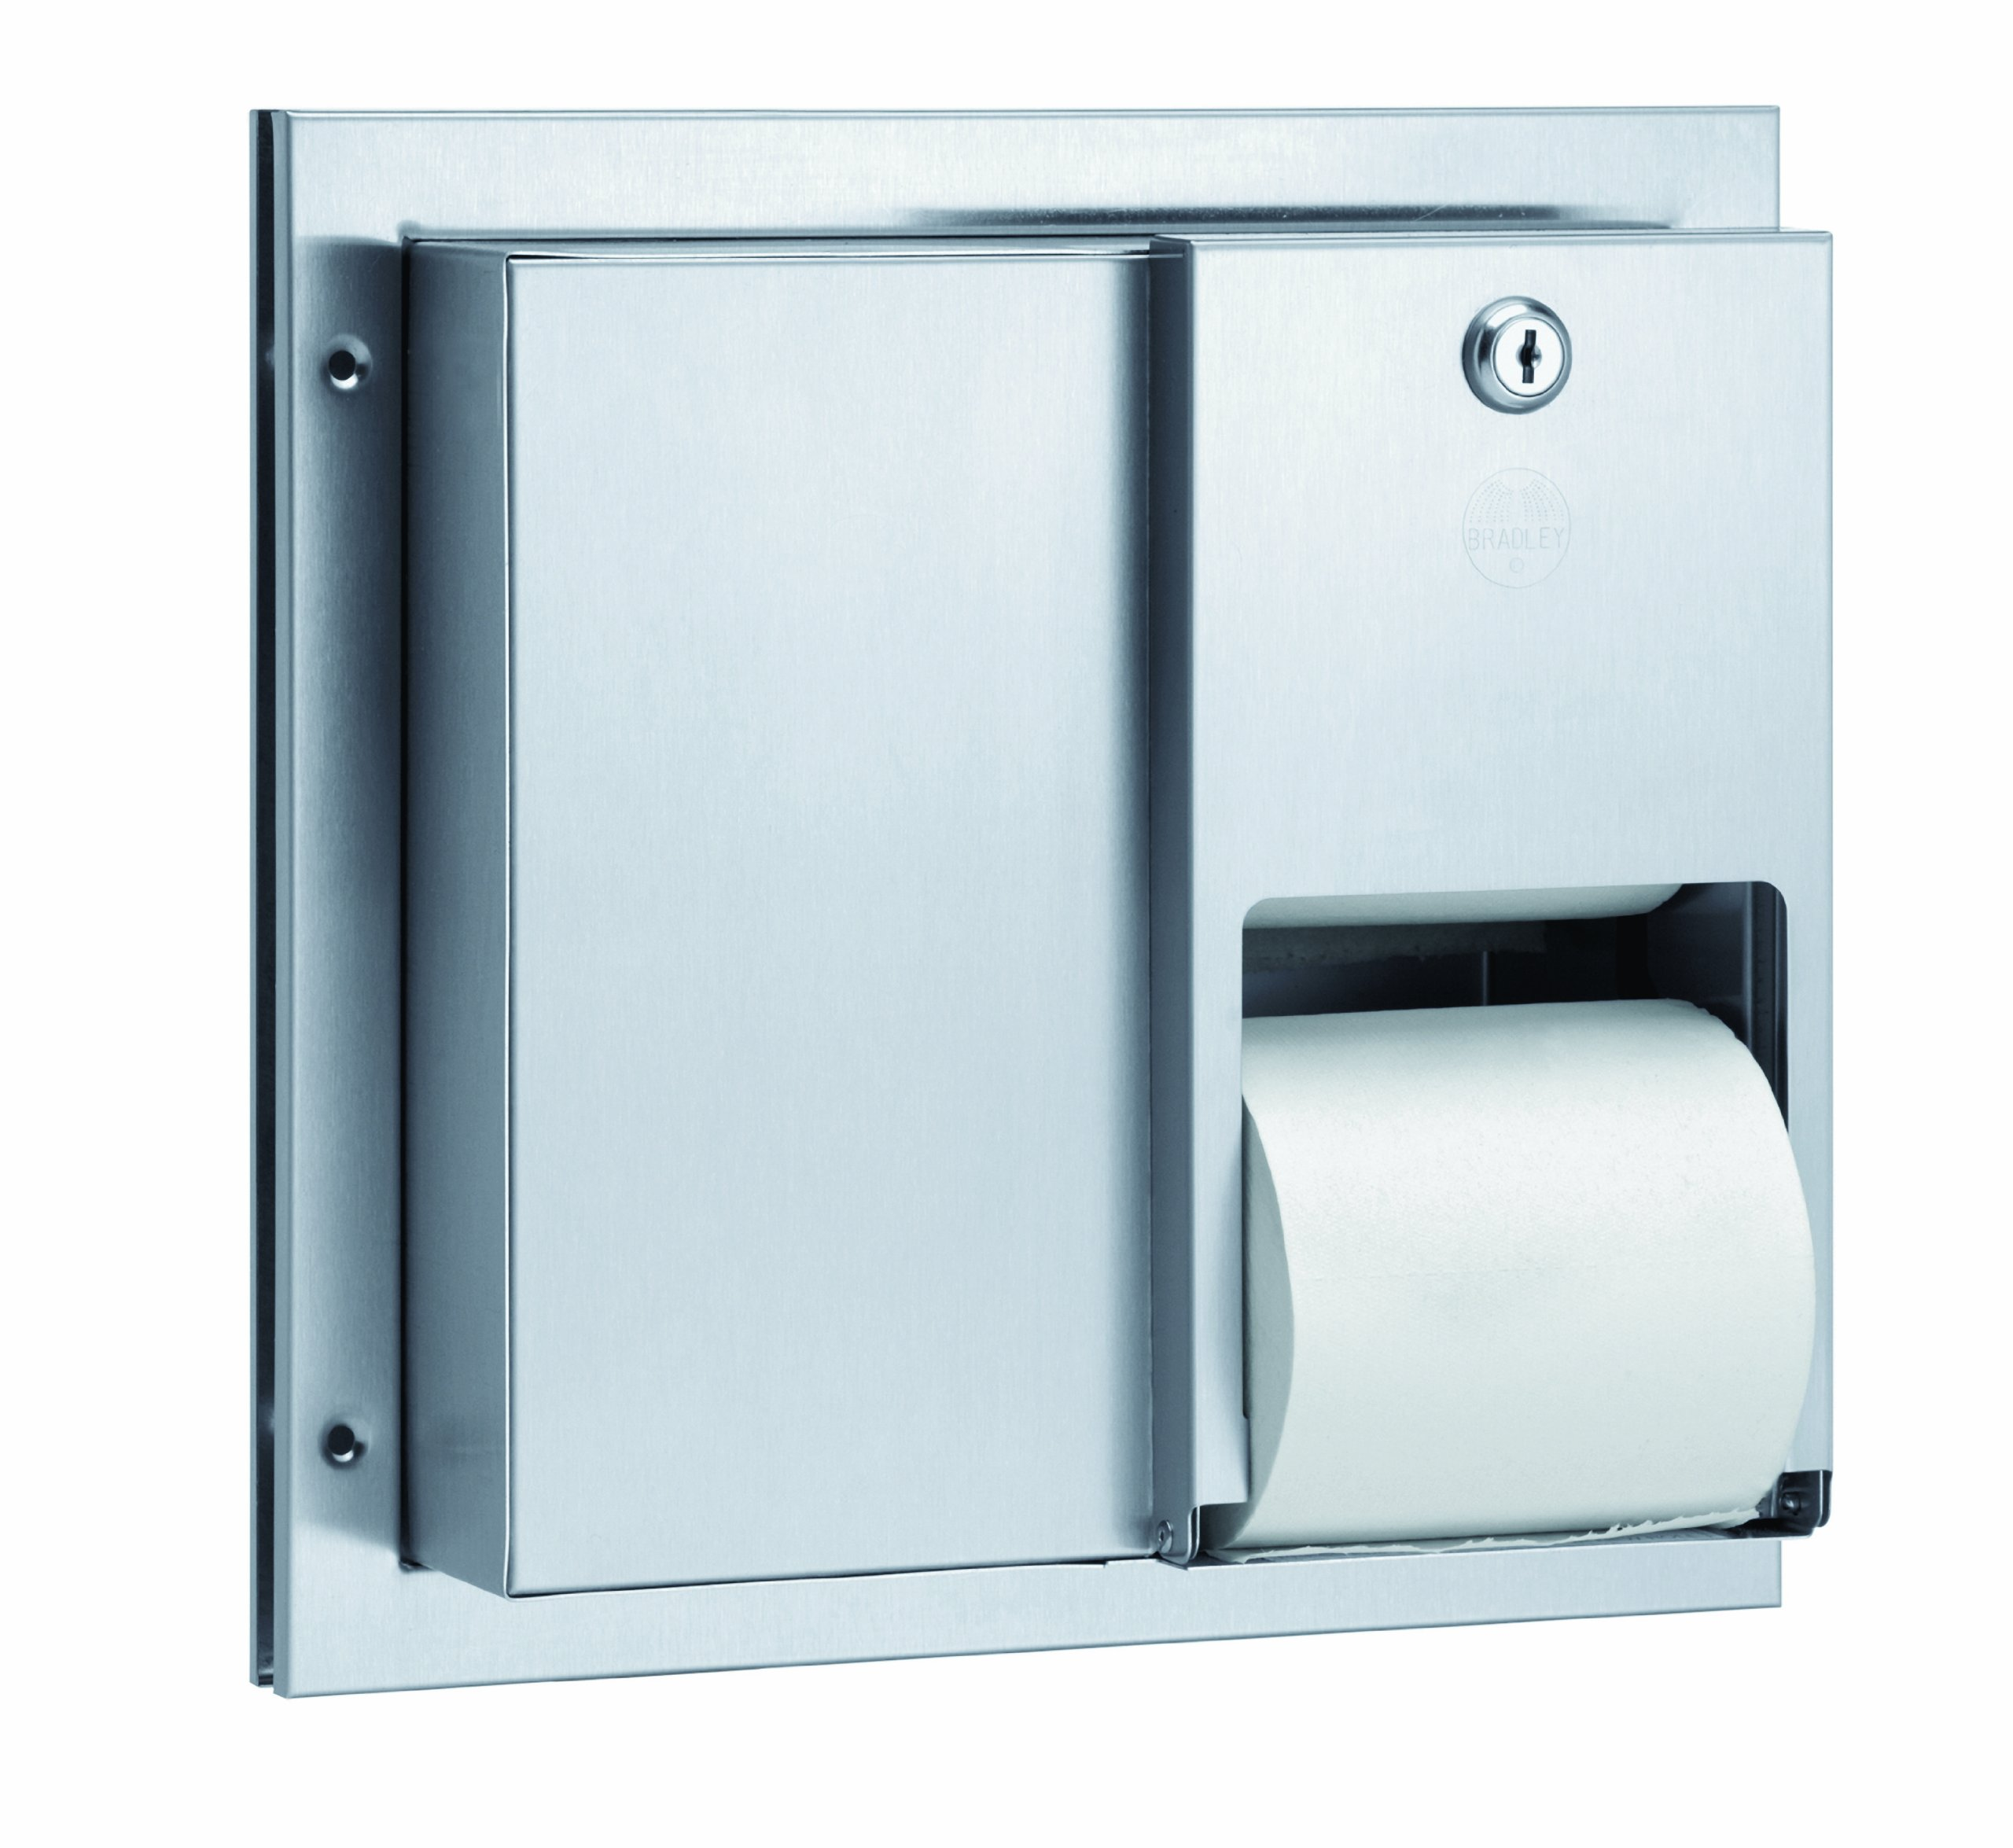 Bradley 5422-000000 22 Gauge Stainless Steel Partition Mounted Toilet Tissue Dispenser, 13'' Width x 12-3/8'' Height x 6-1/4'' Depth